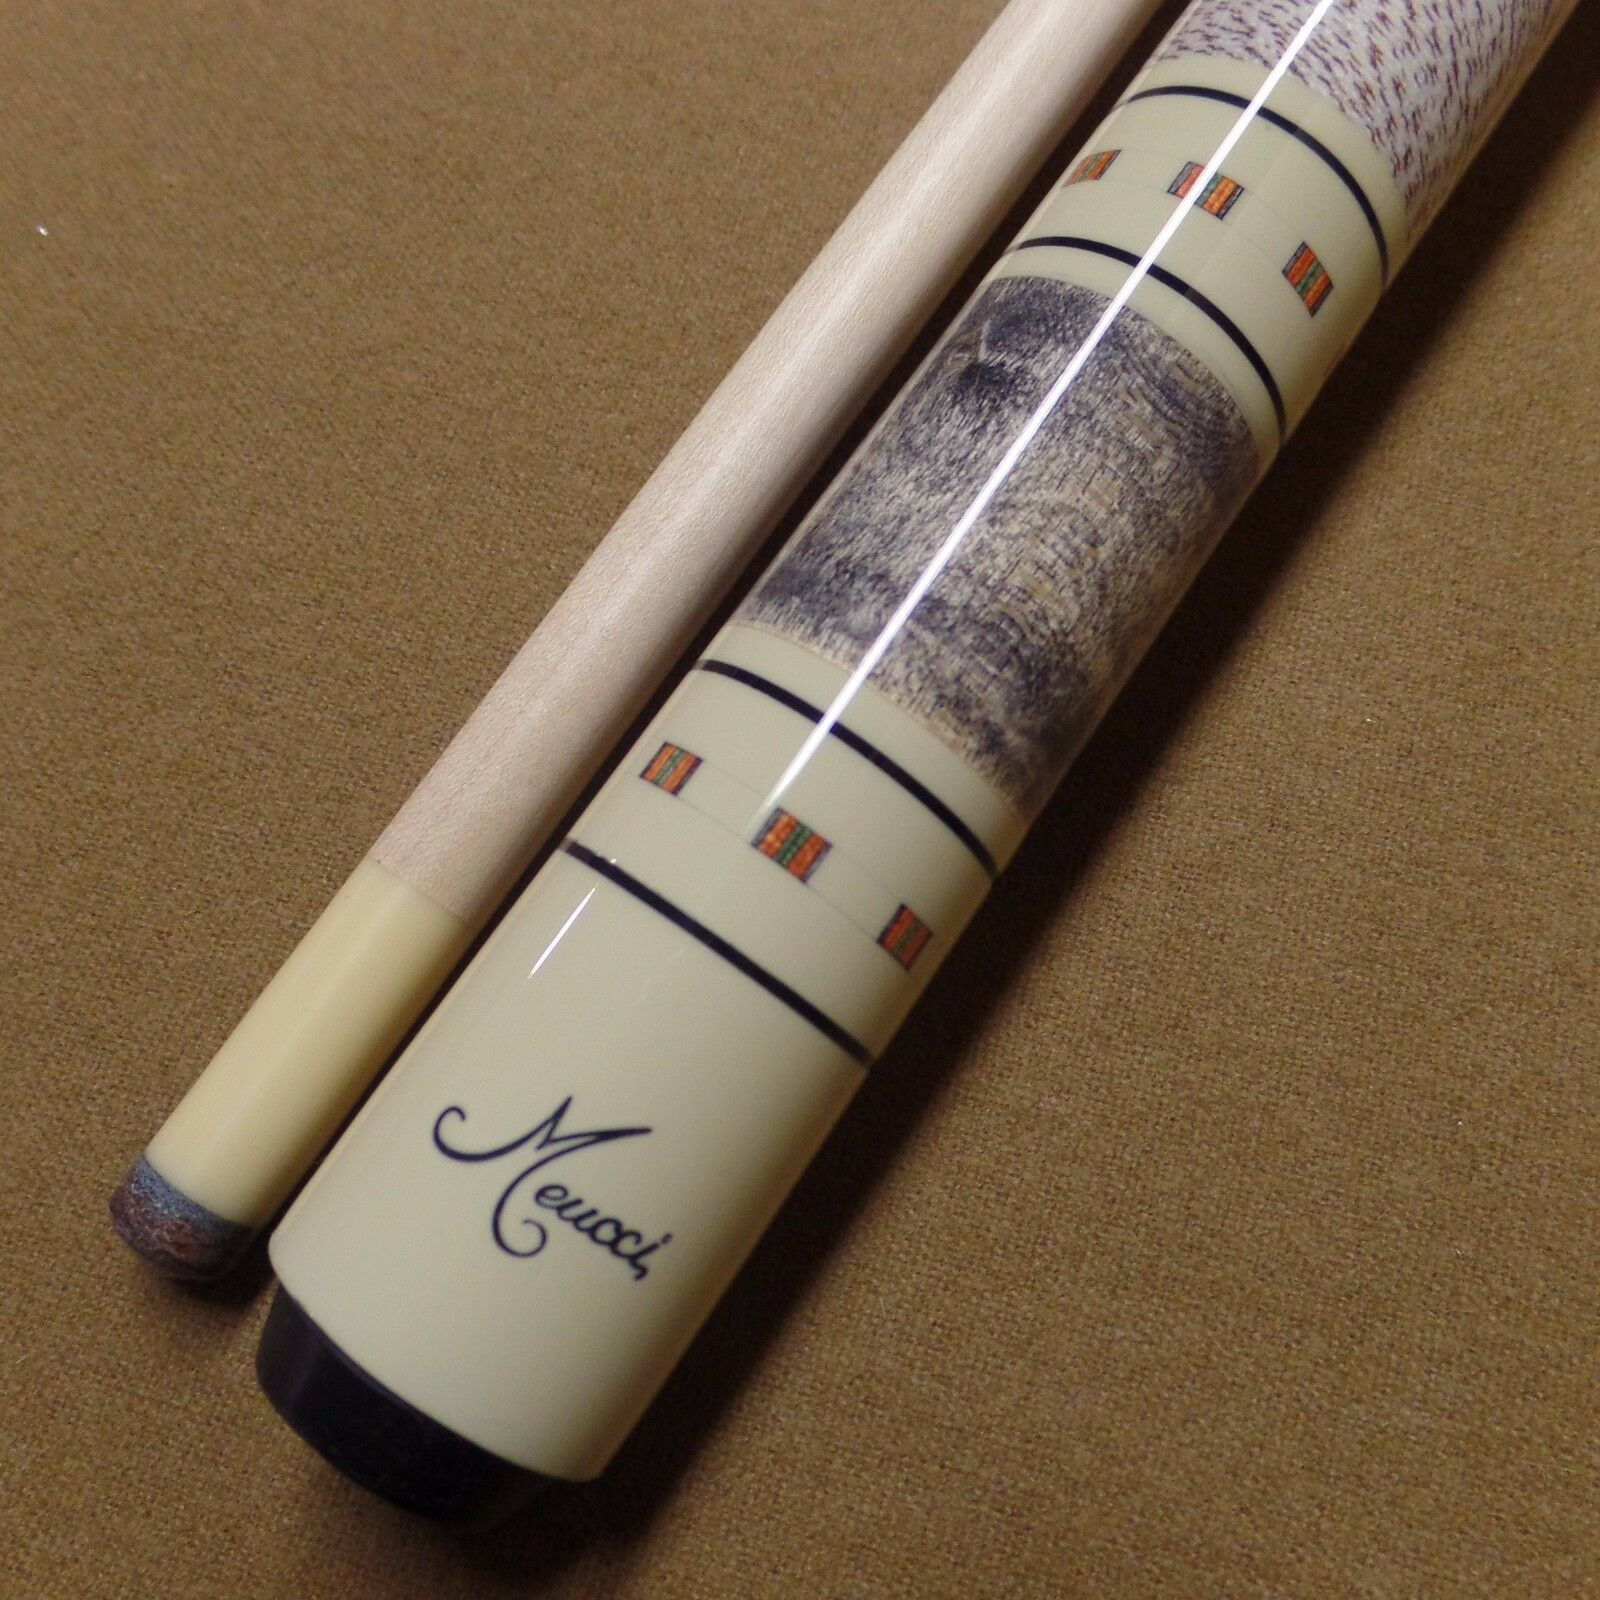 Meucci 97-12 Pool Cue 9712 w/ Red Dot Shaft and Free Shipping